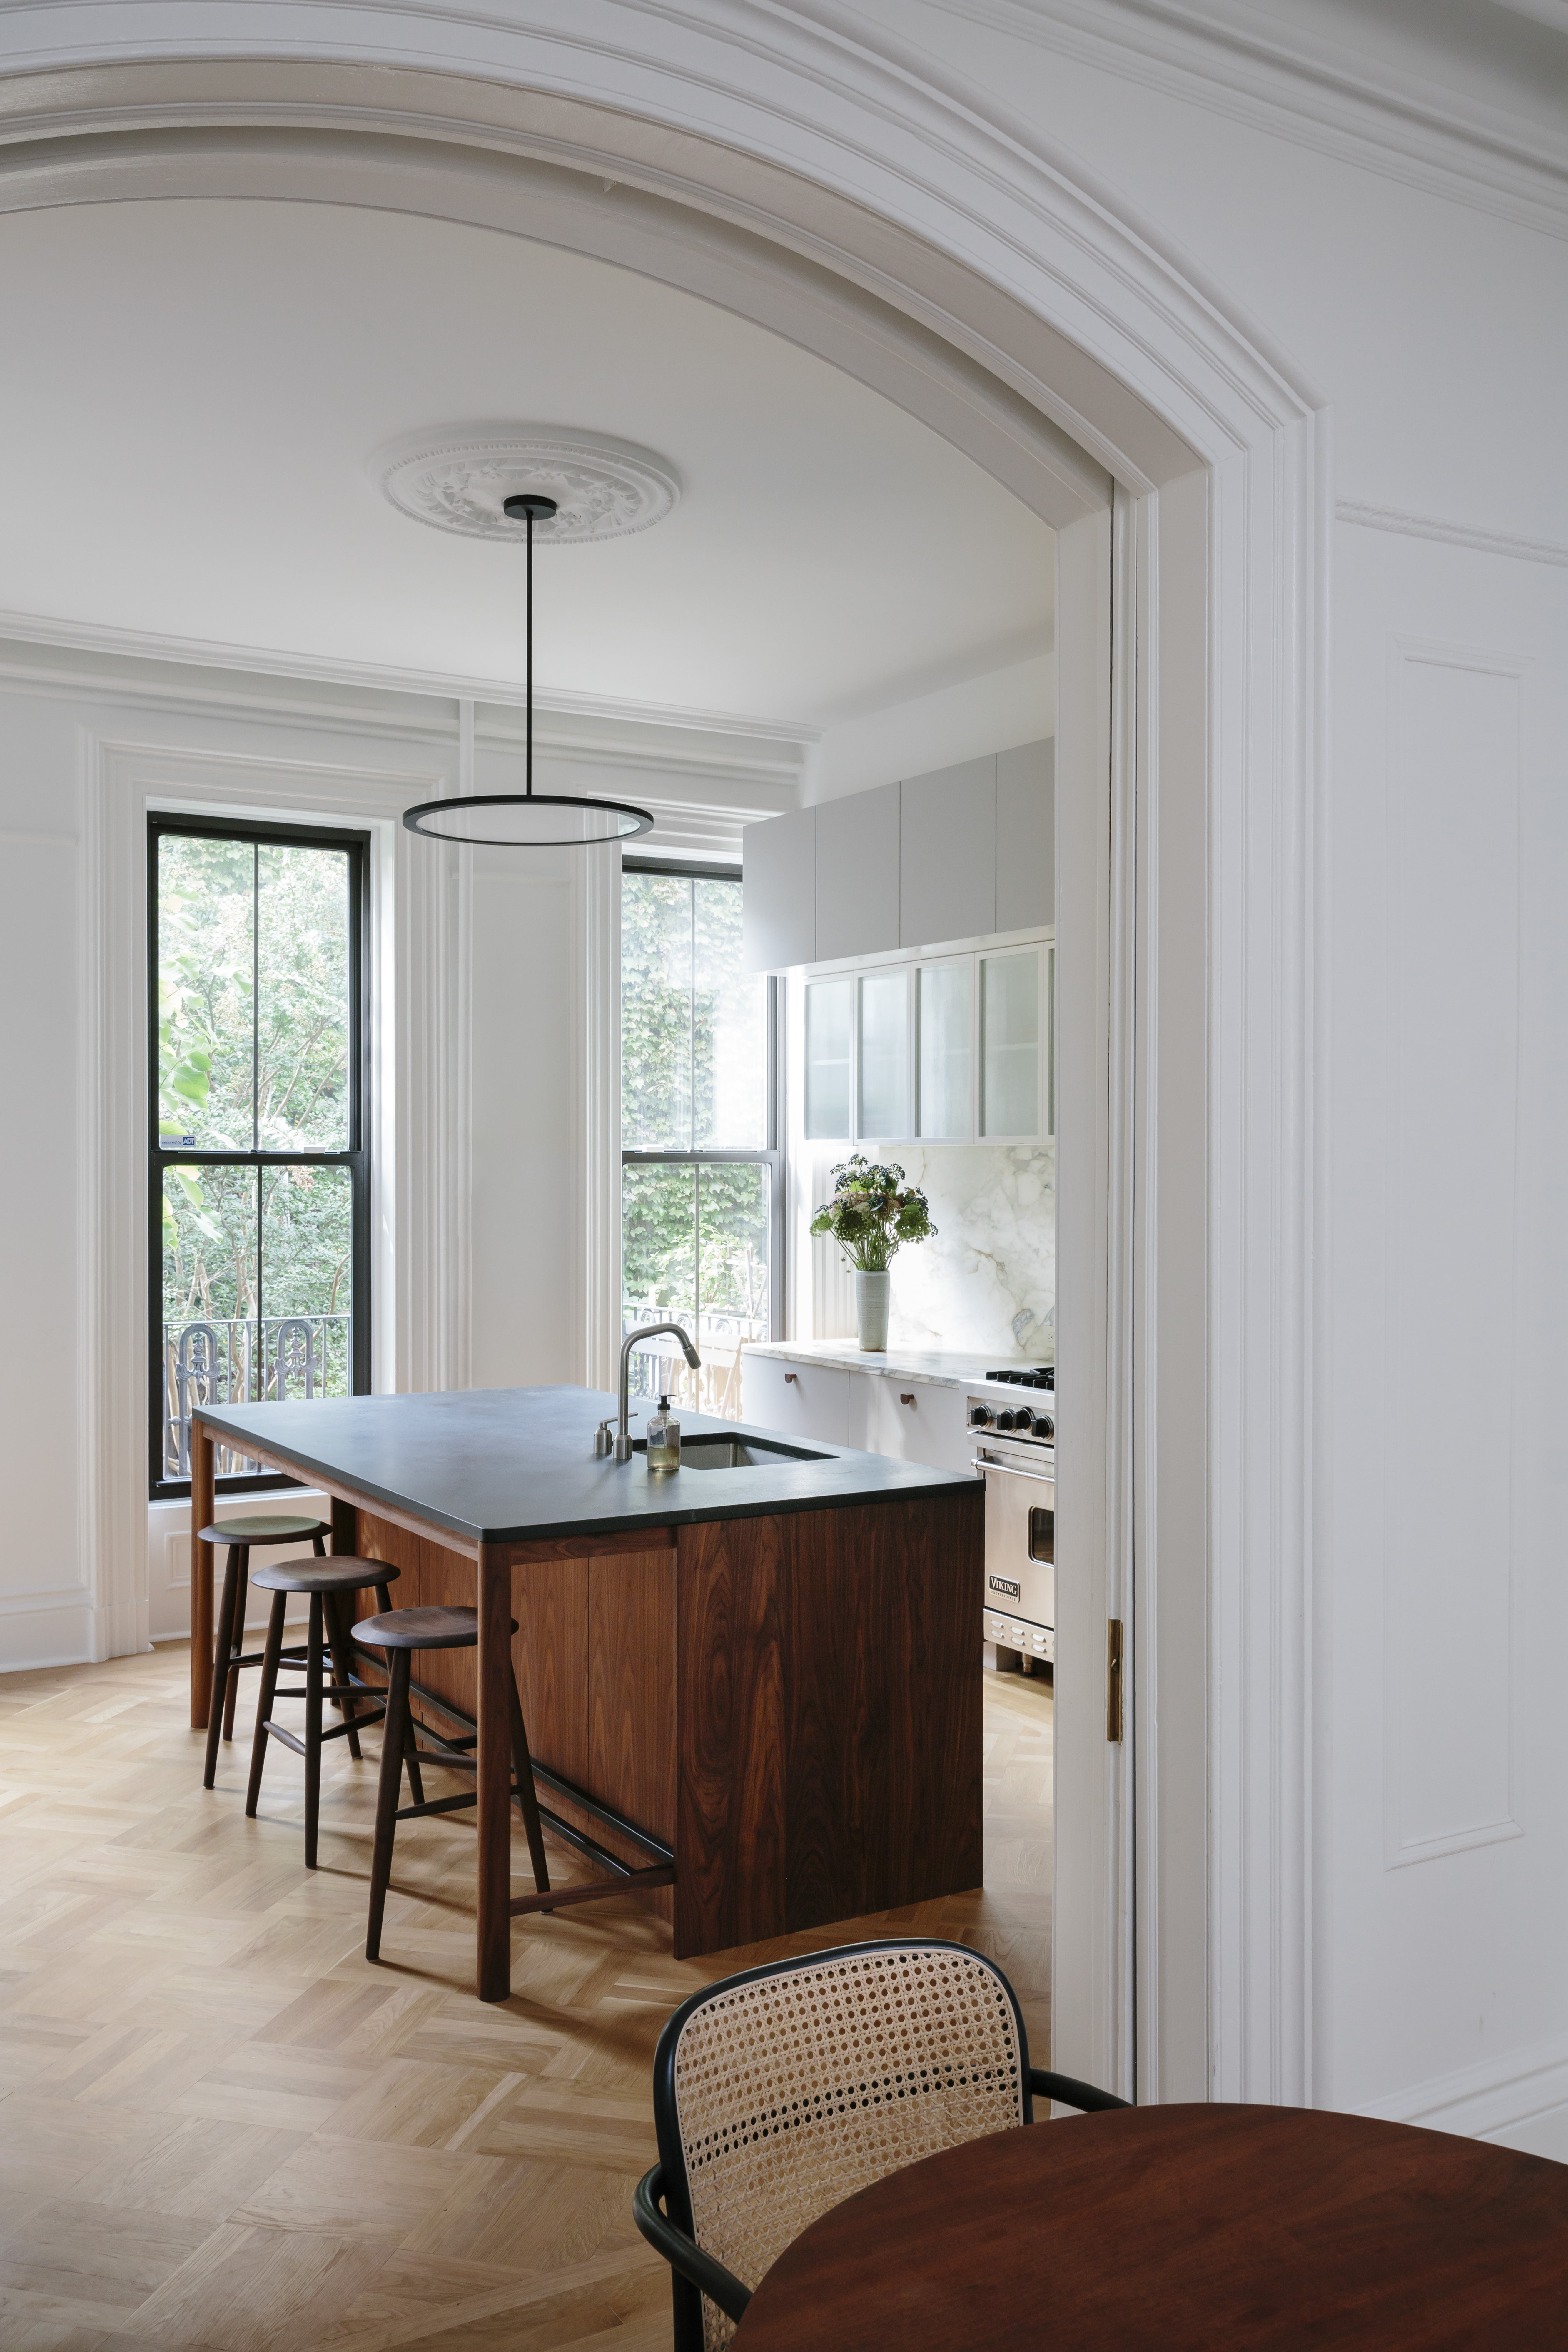 Into the kitchen. The caned dining chairs are the Hoffmann Dining Chairs by Design Within Reach.